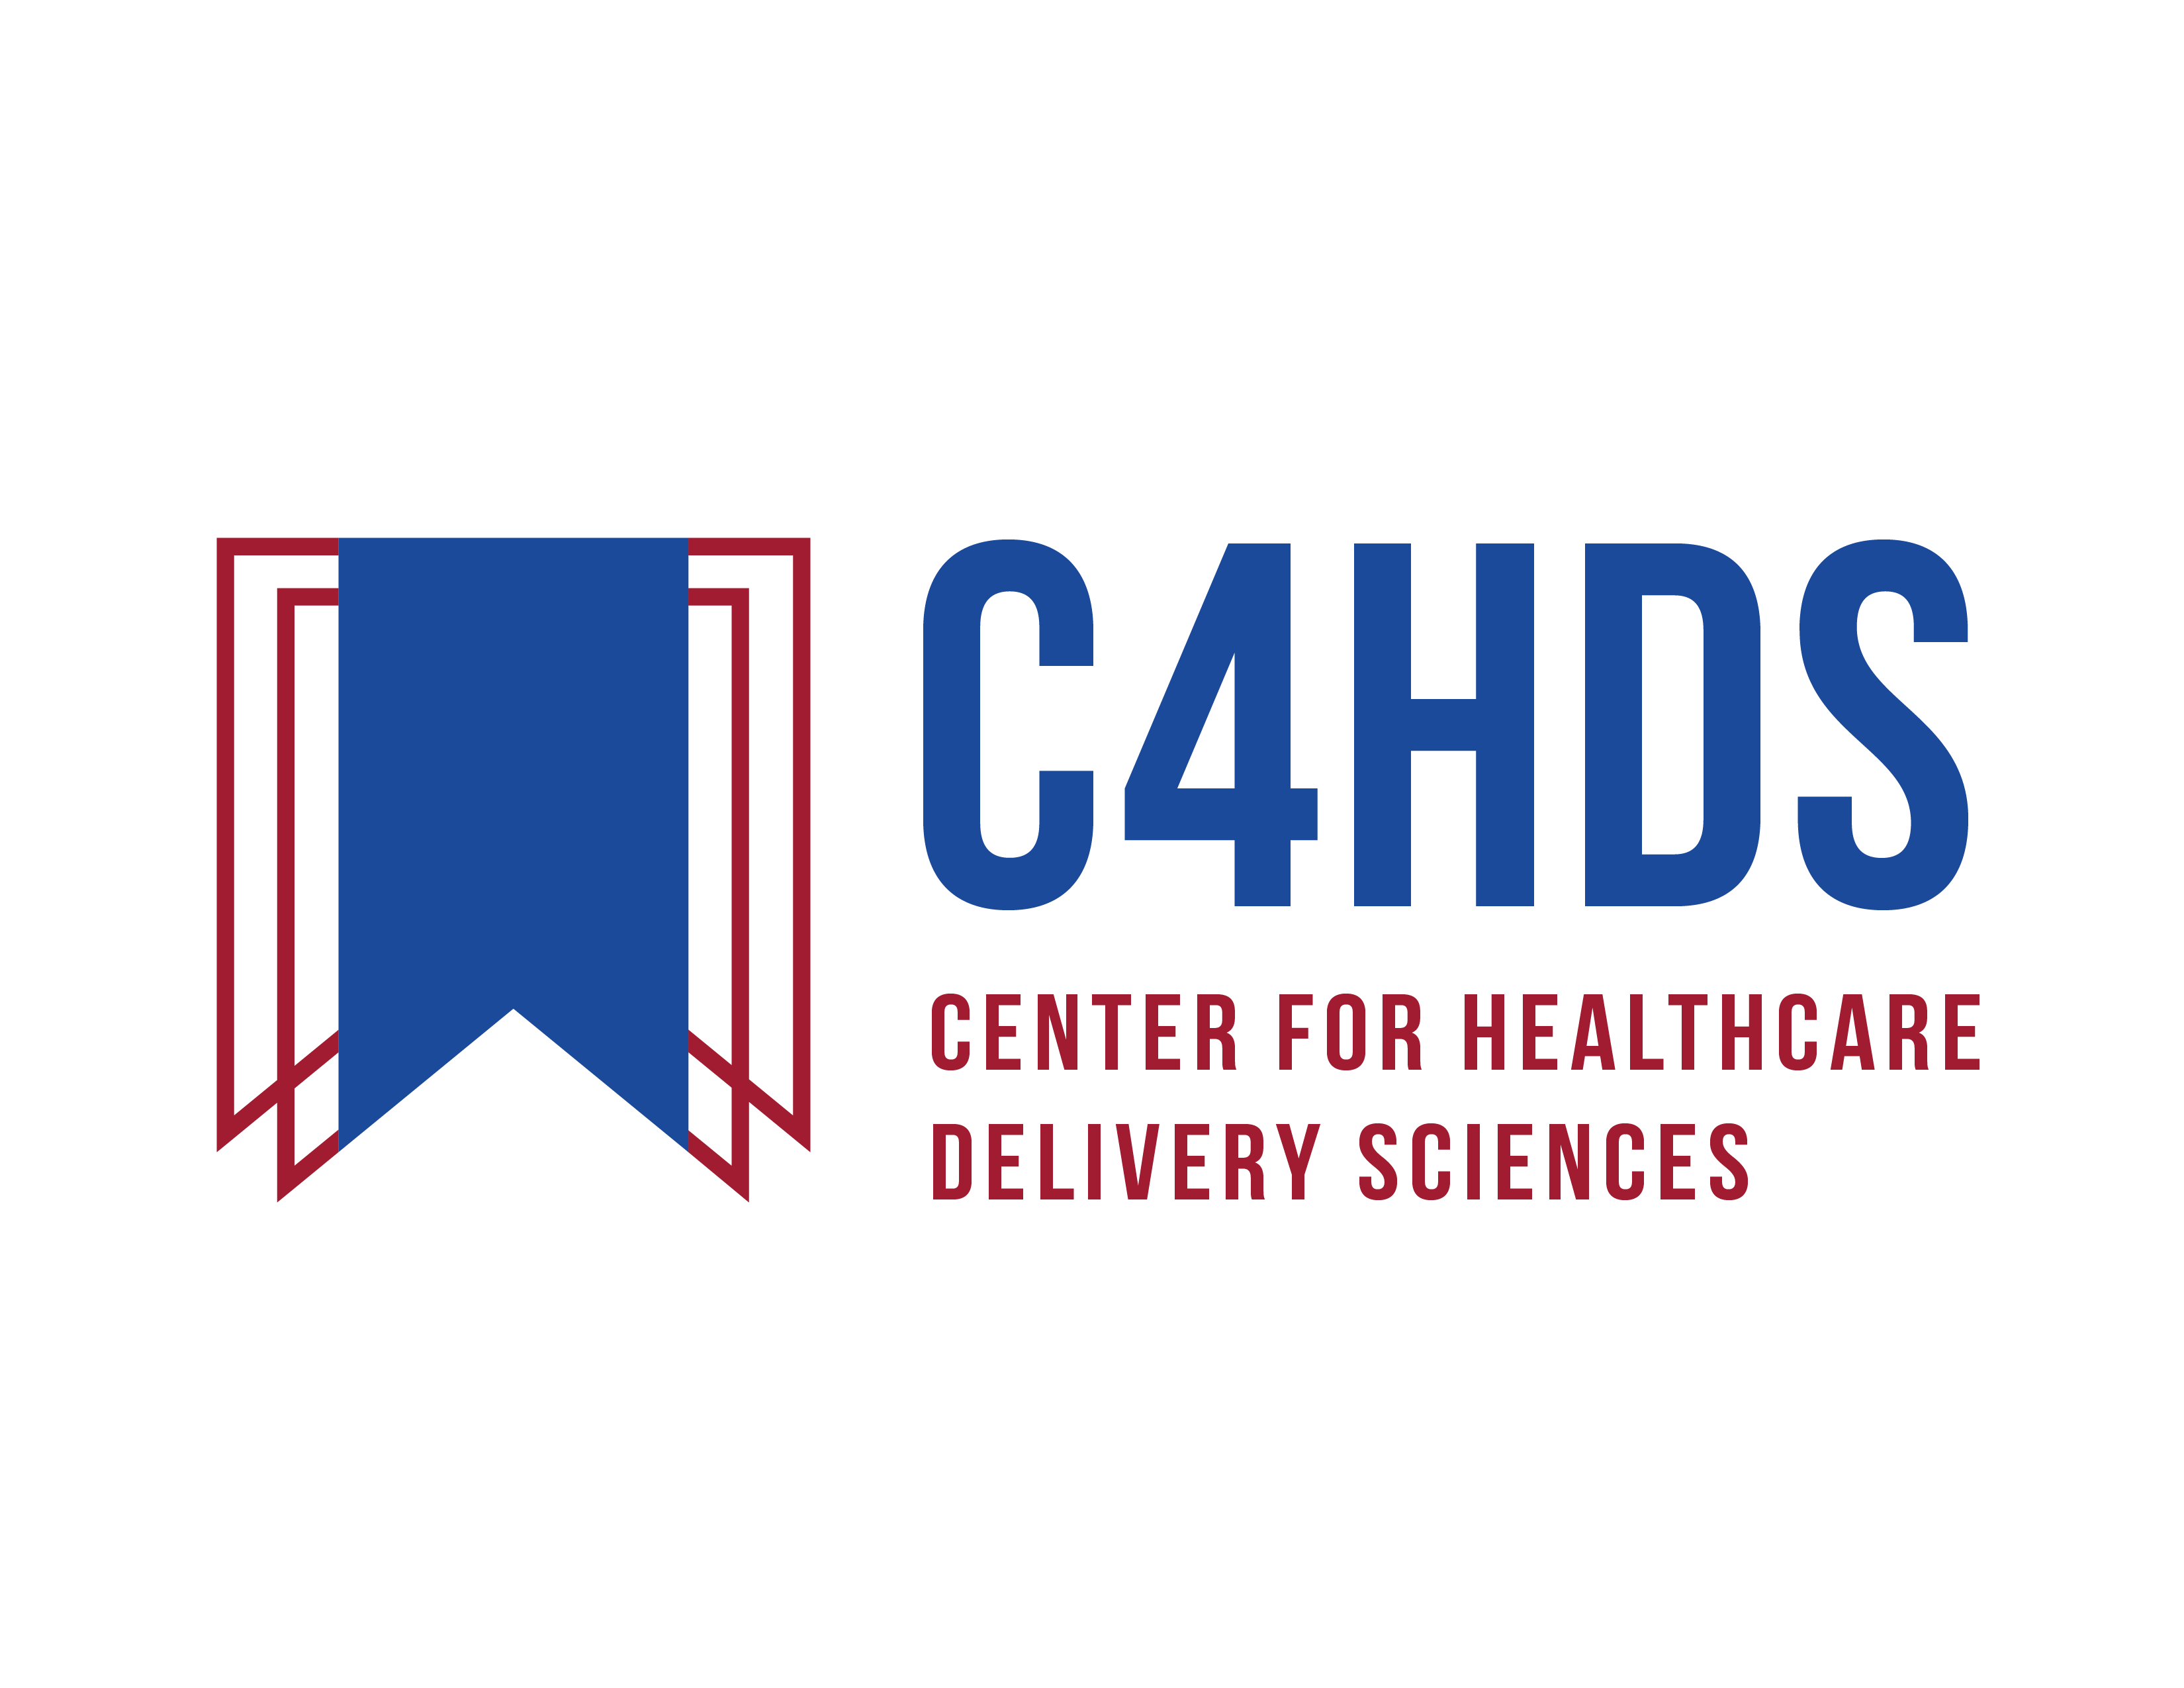 Center for Healthcare Delivery Services logo.